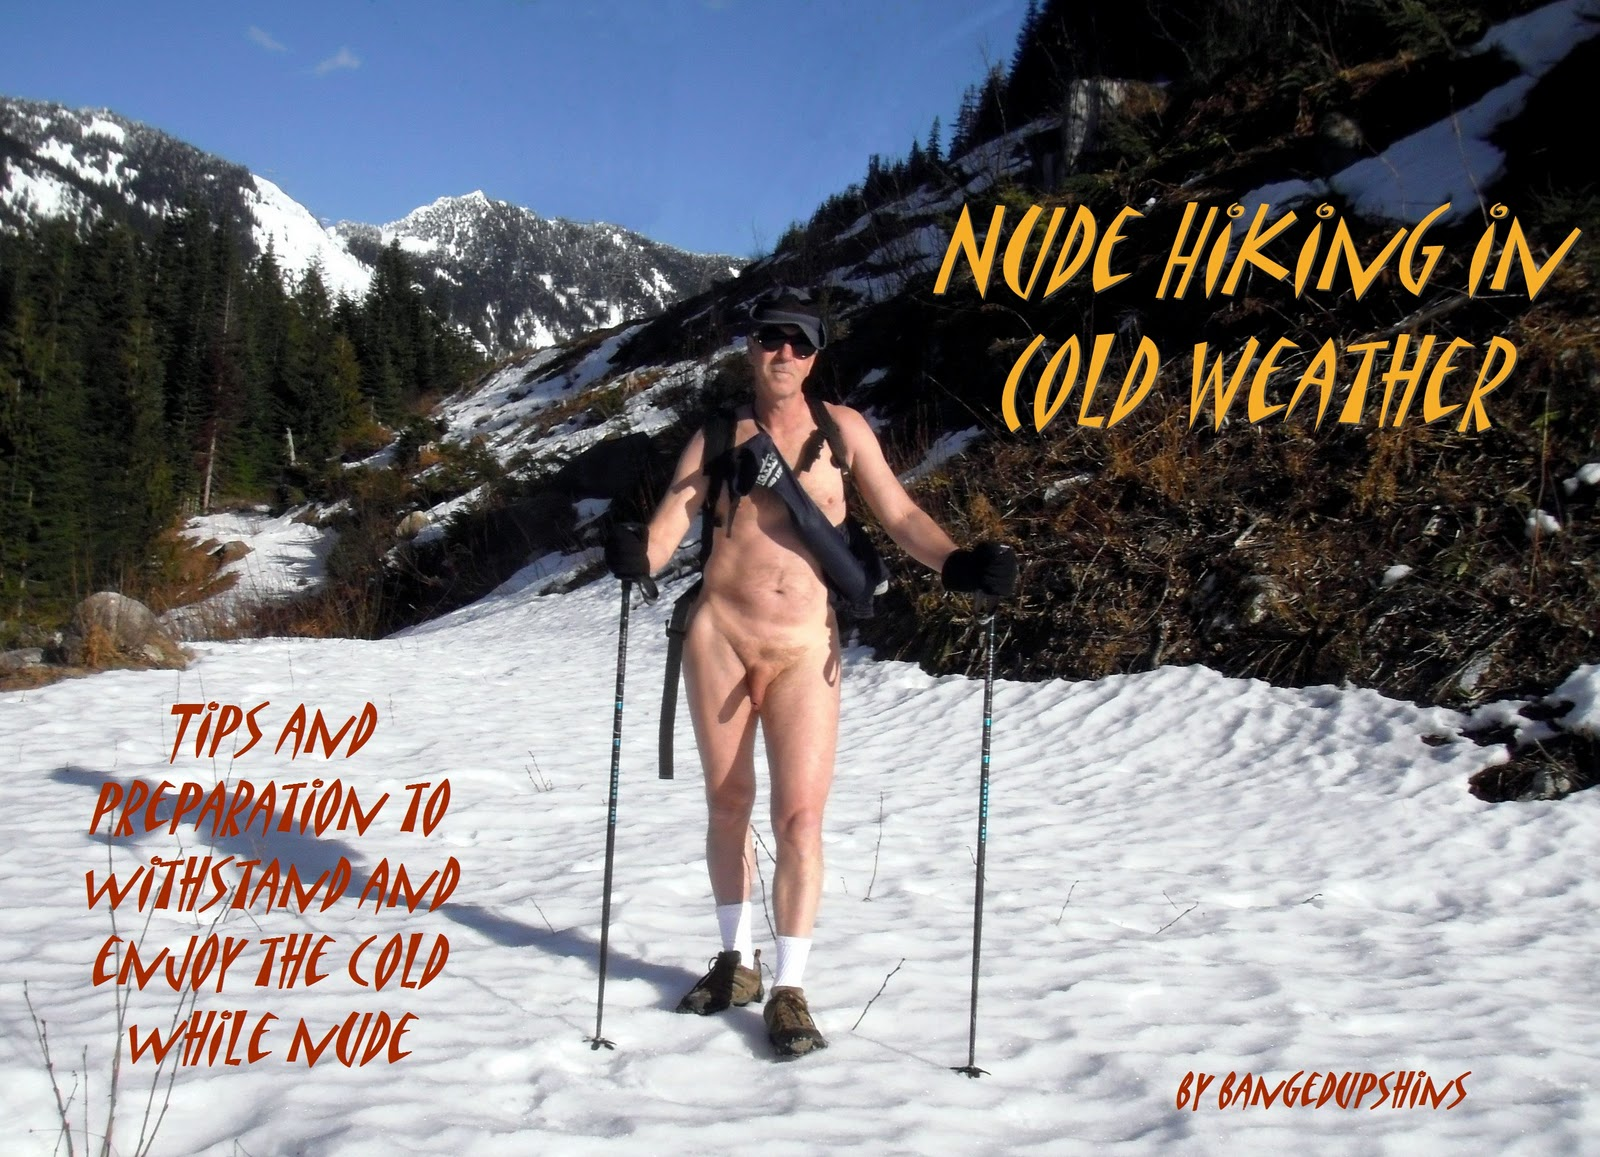 Cold Weather Nudity  Nude Hiking And Soaking In The -3584